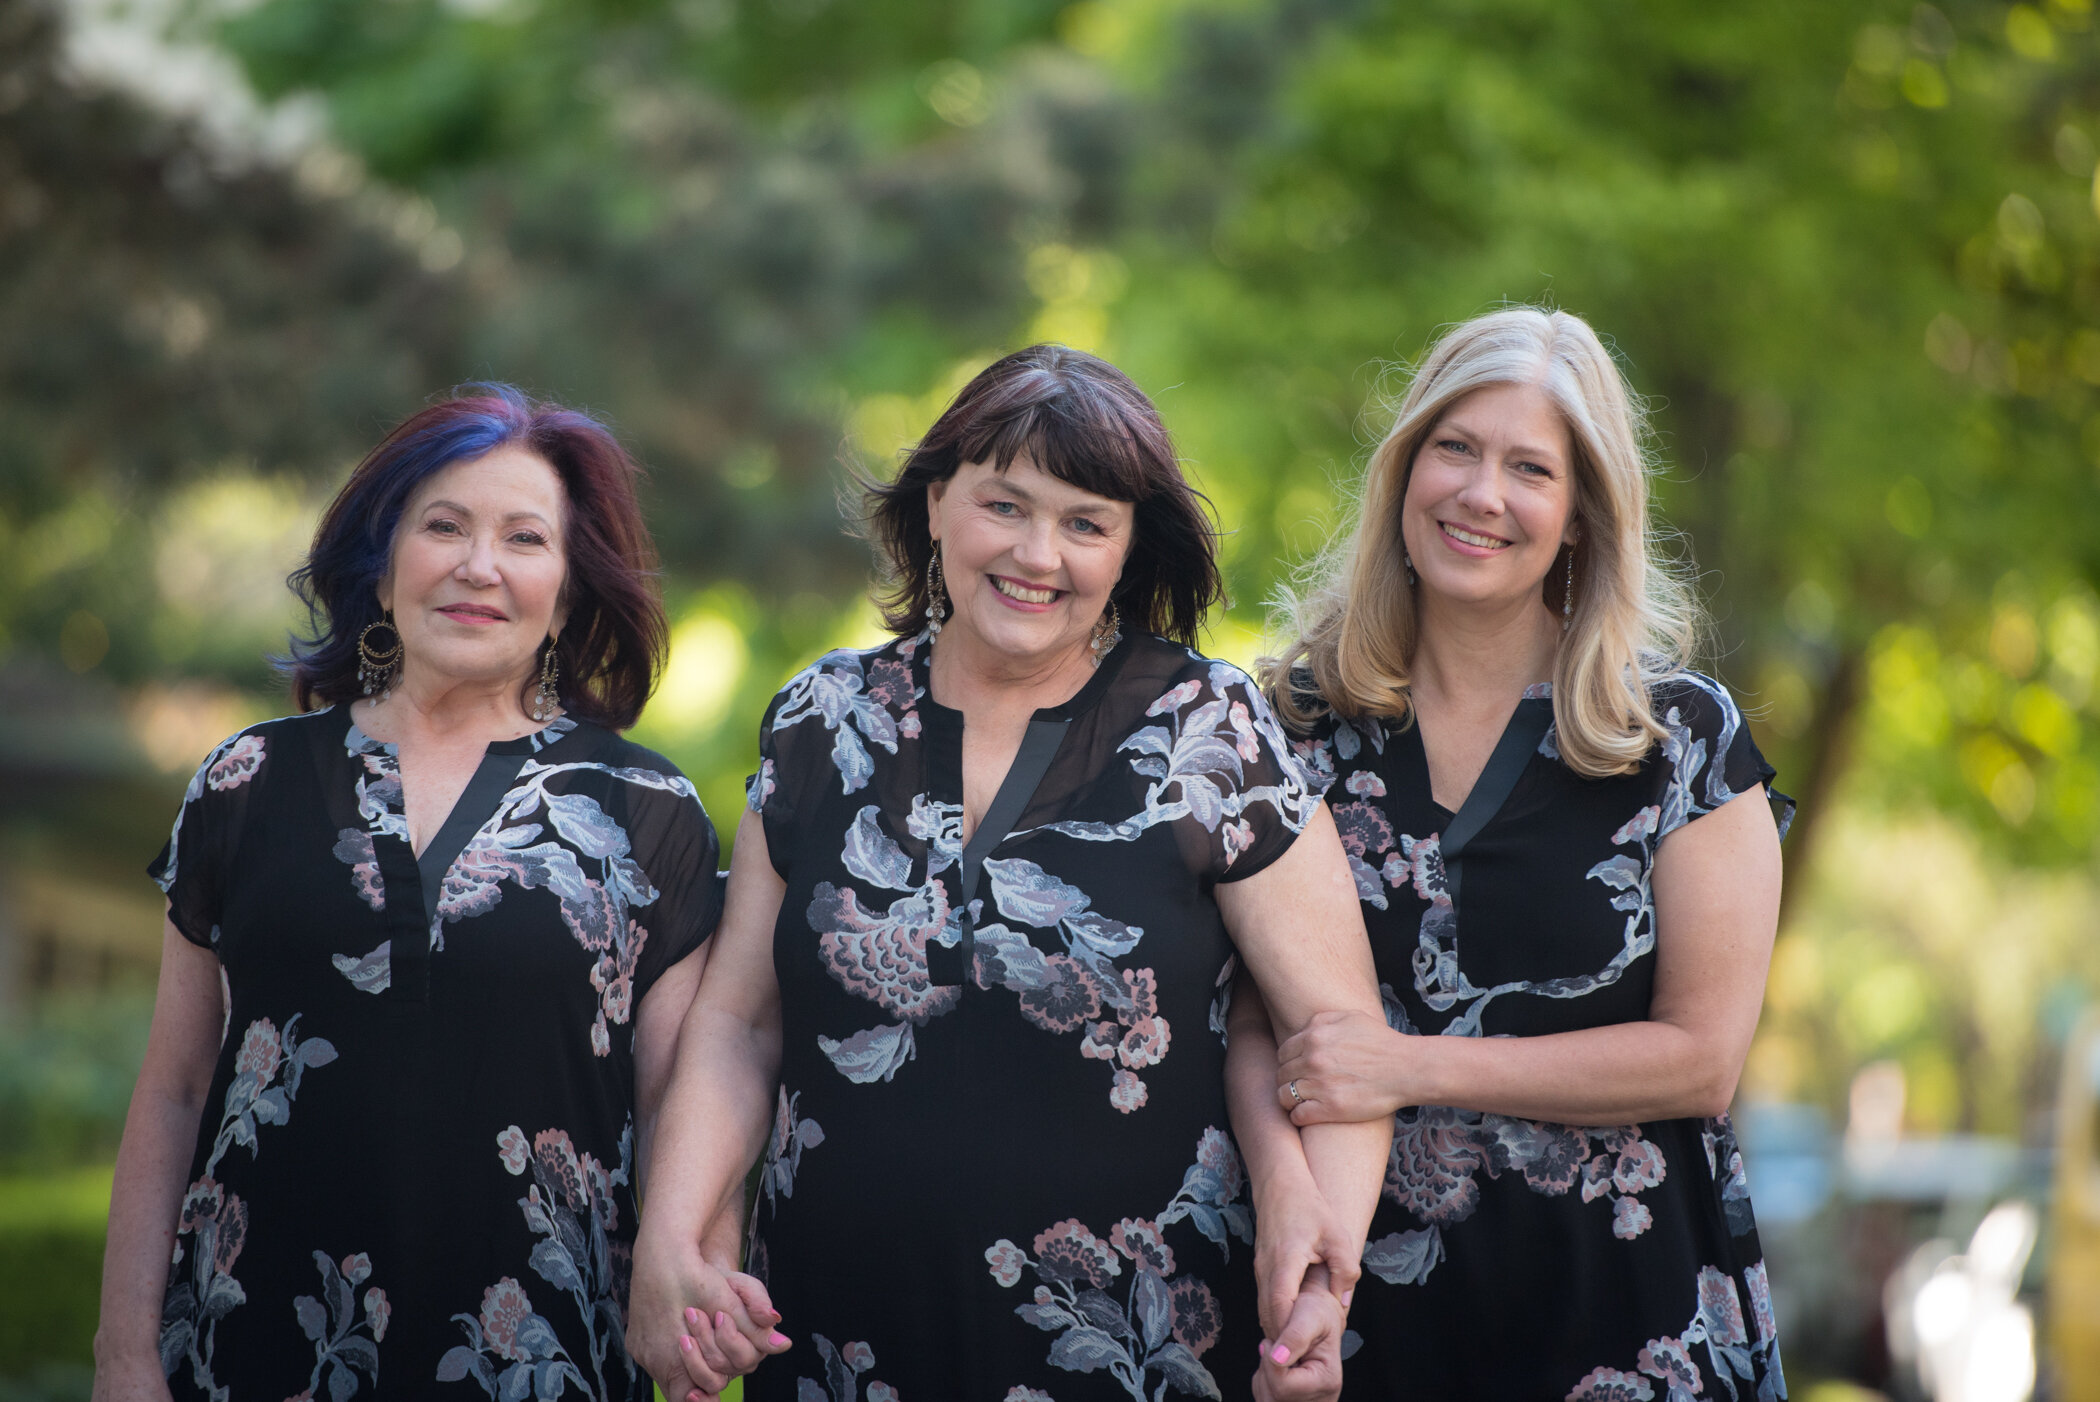 The Hot Mammas are at Jazz Vespers October 6 and at The Sylvia October 23.